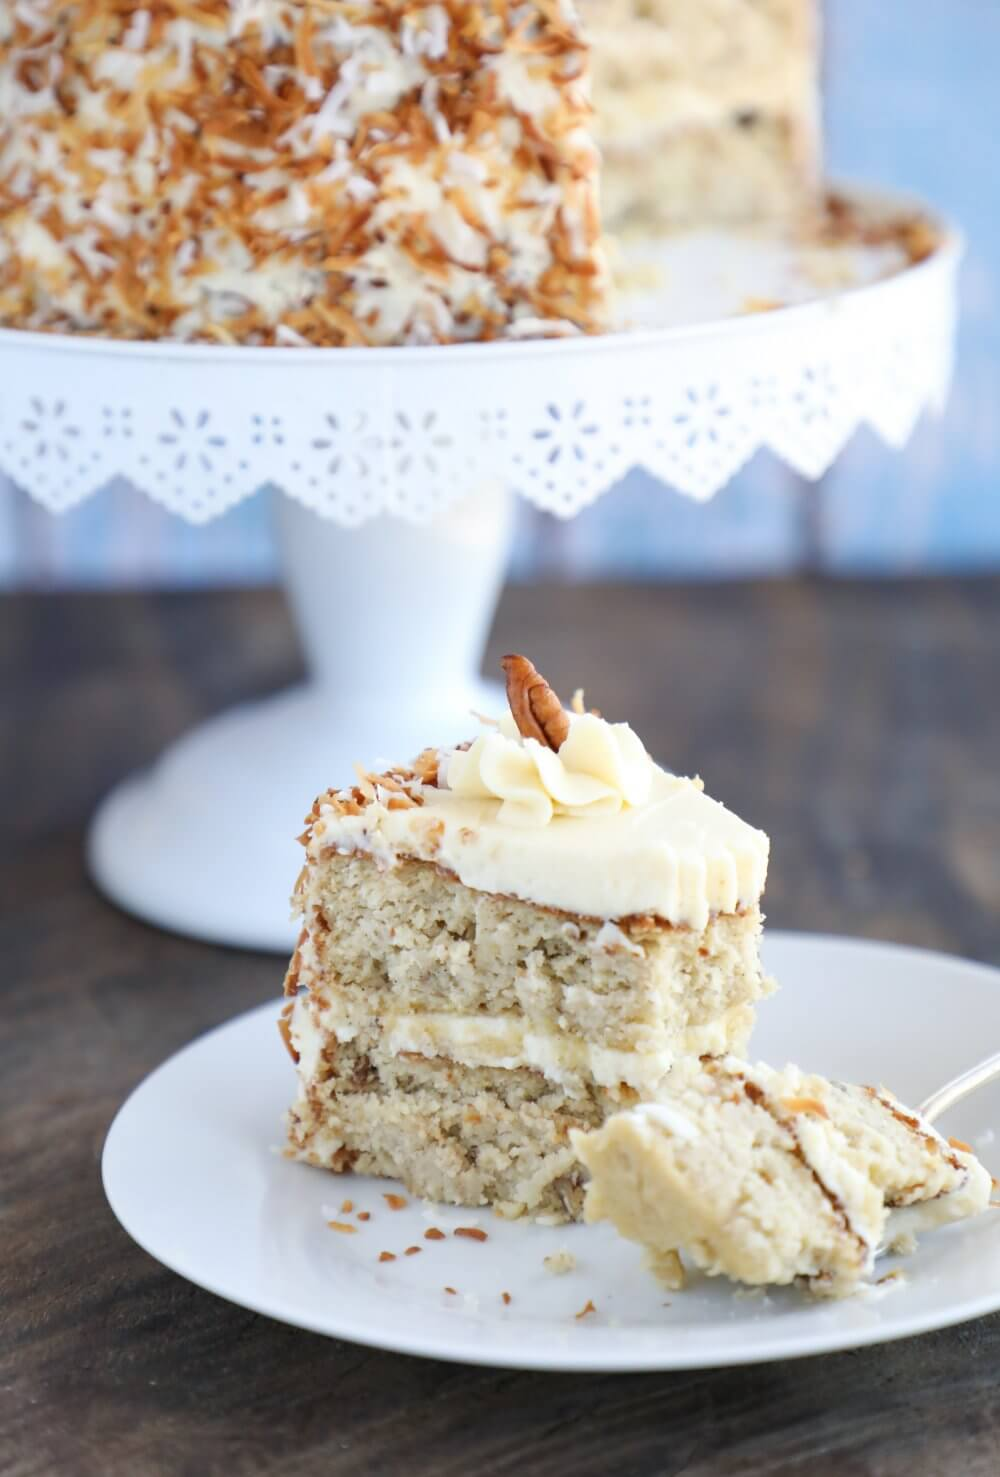 Slice of Keto Hummingbird Cake with a forkful on the white plate front view